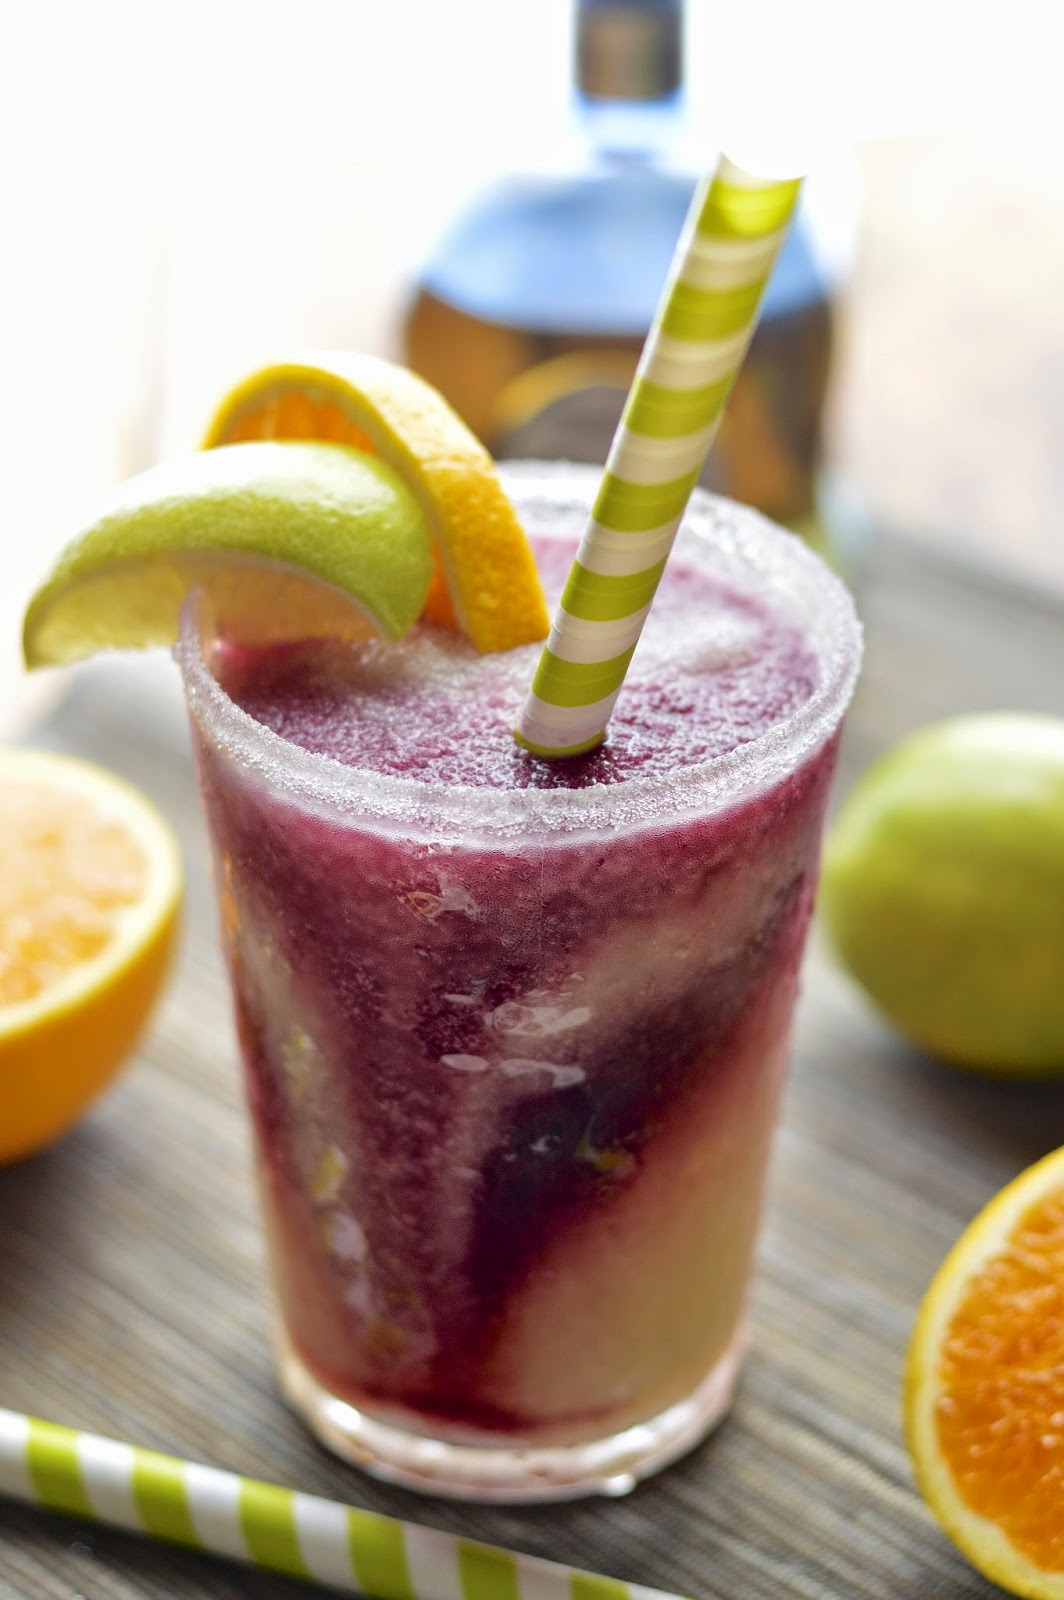 Frozen lime margaritas with a swirl of frosty and fruity sangria - the perfect summer cocktail.